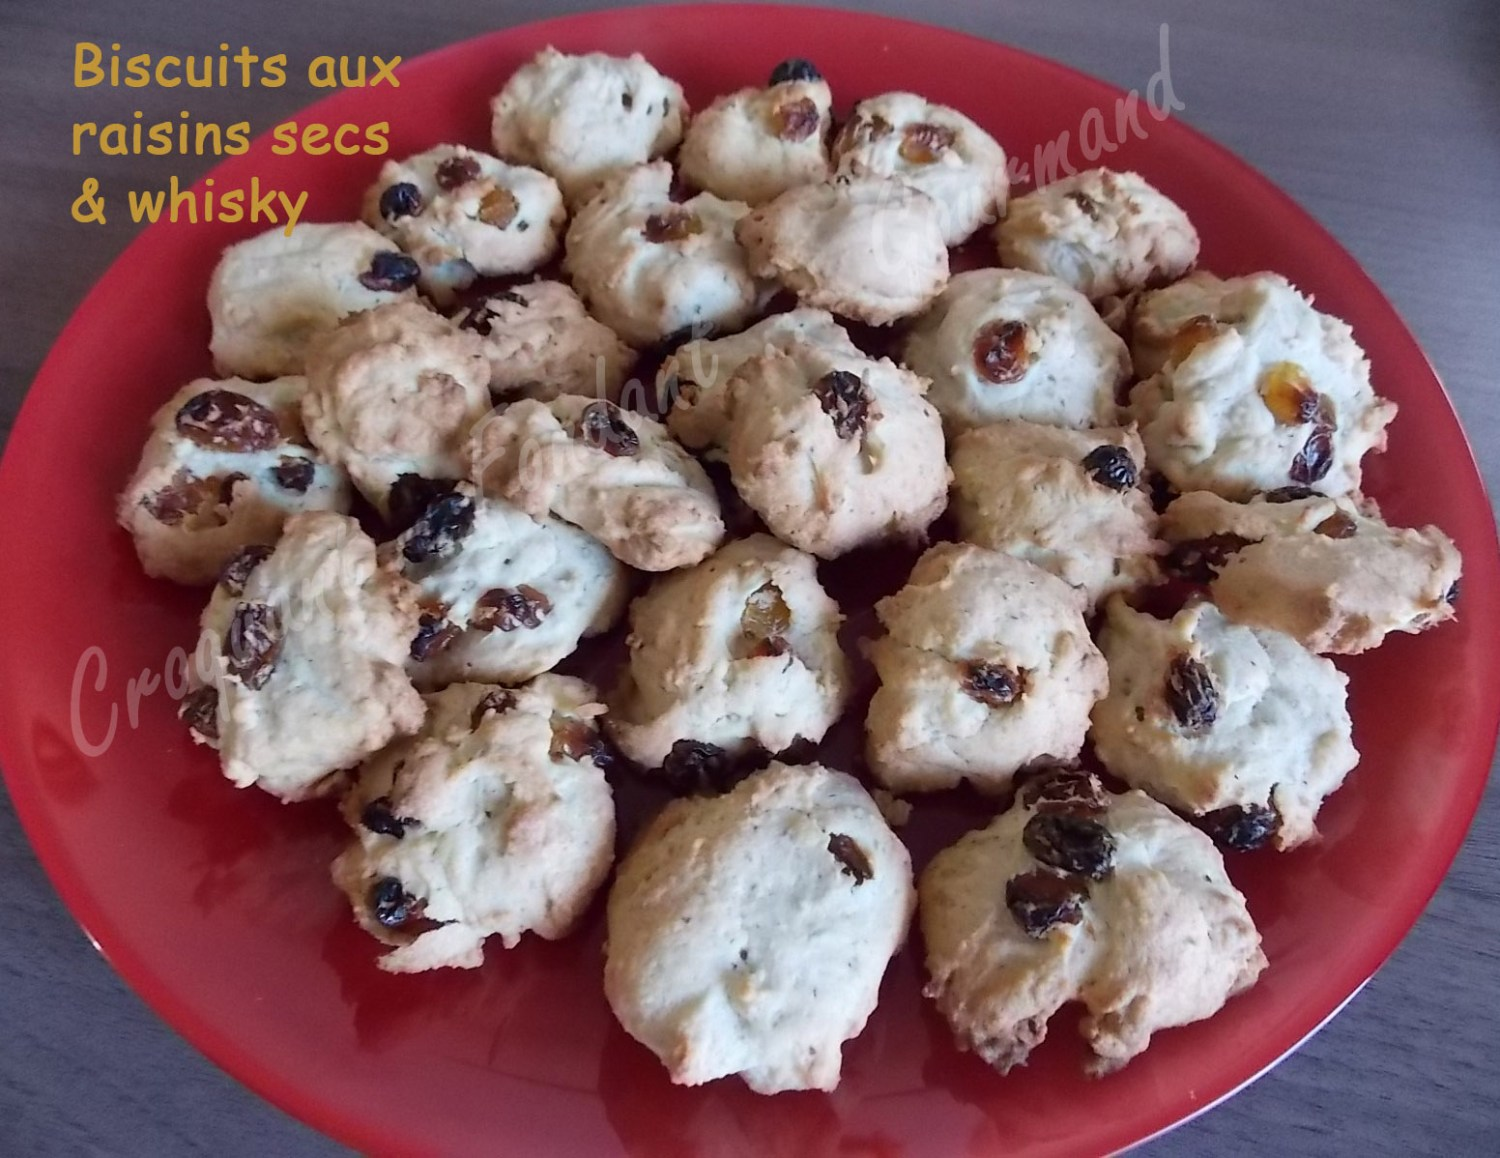 Biscuits aux raisins secs & whiskyDSCN2344_32037